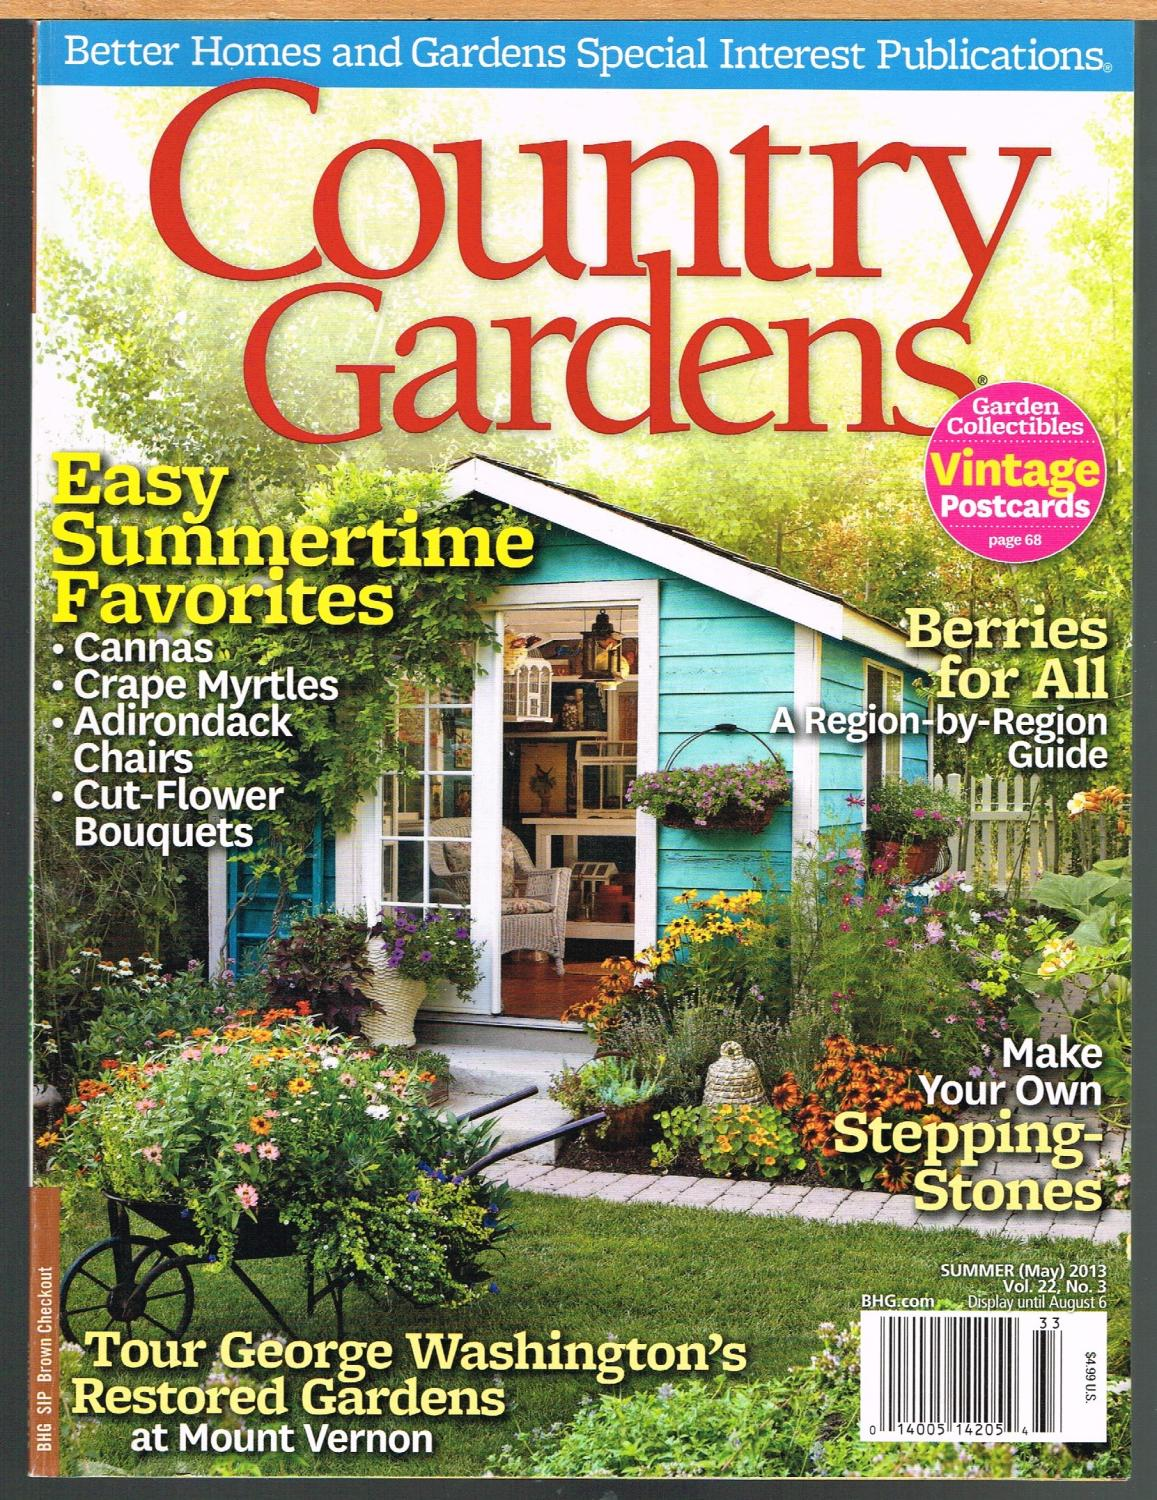 Country Gardens Summer 2013 Vol 22 No 3 Better Homes And